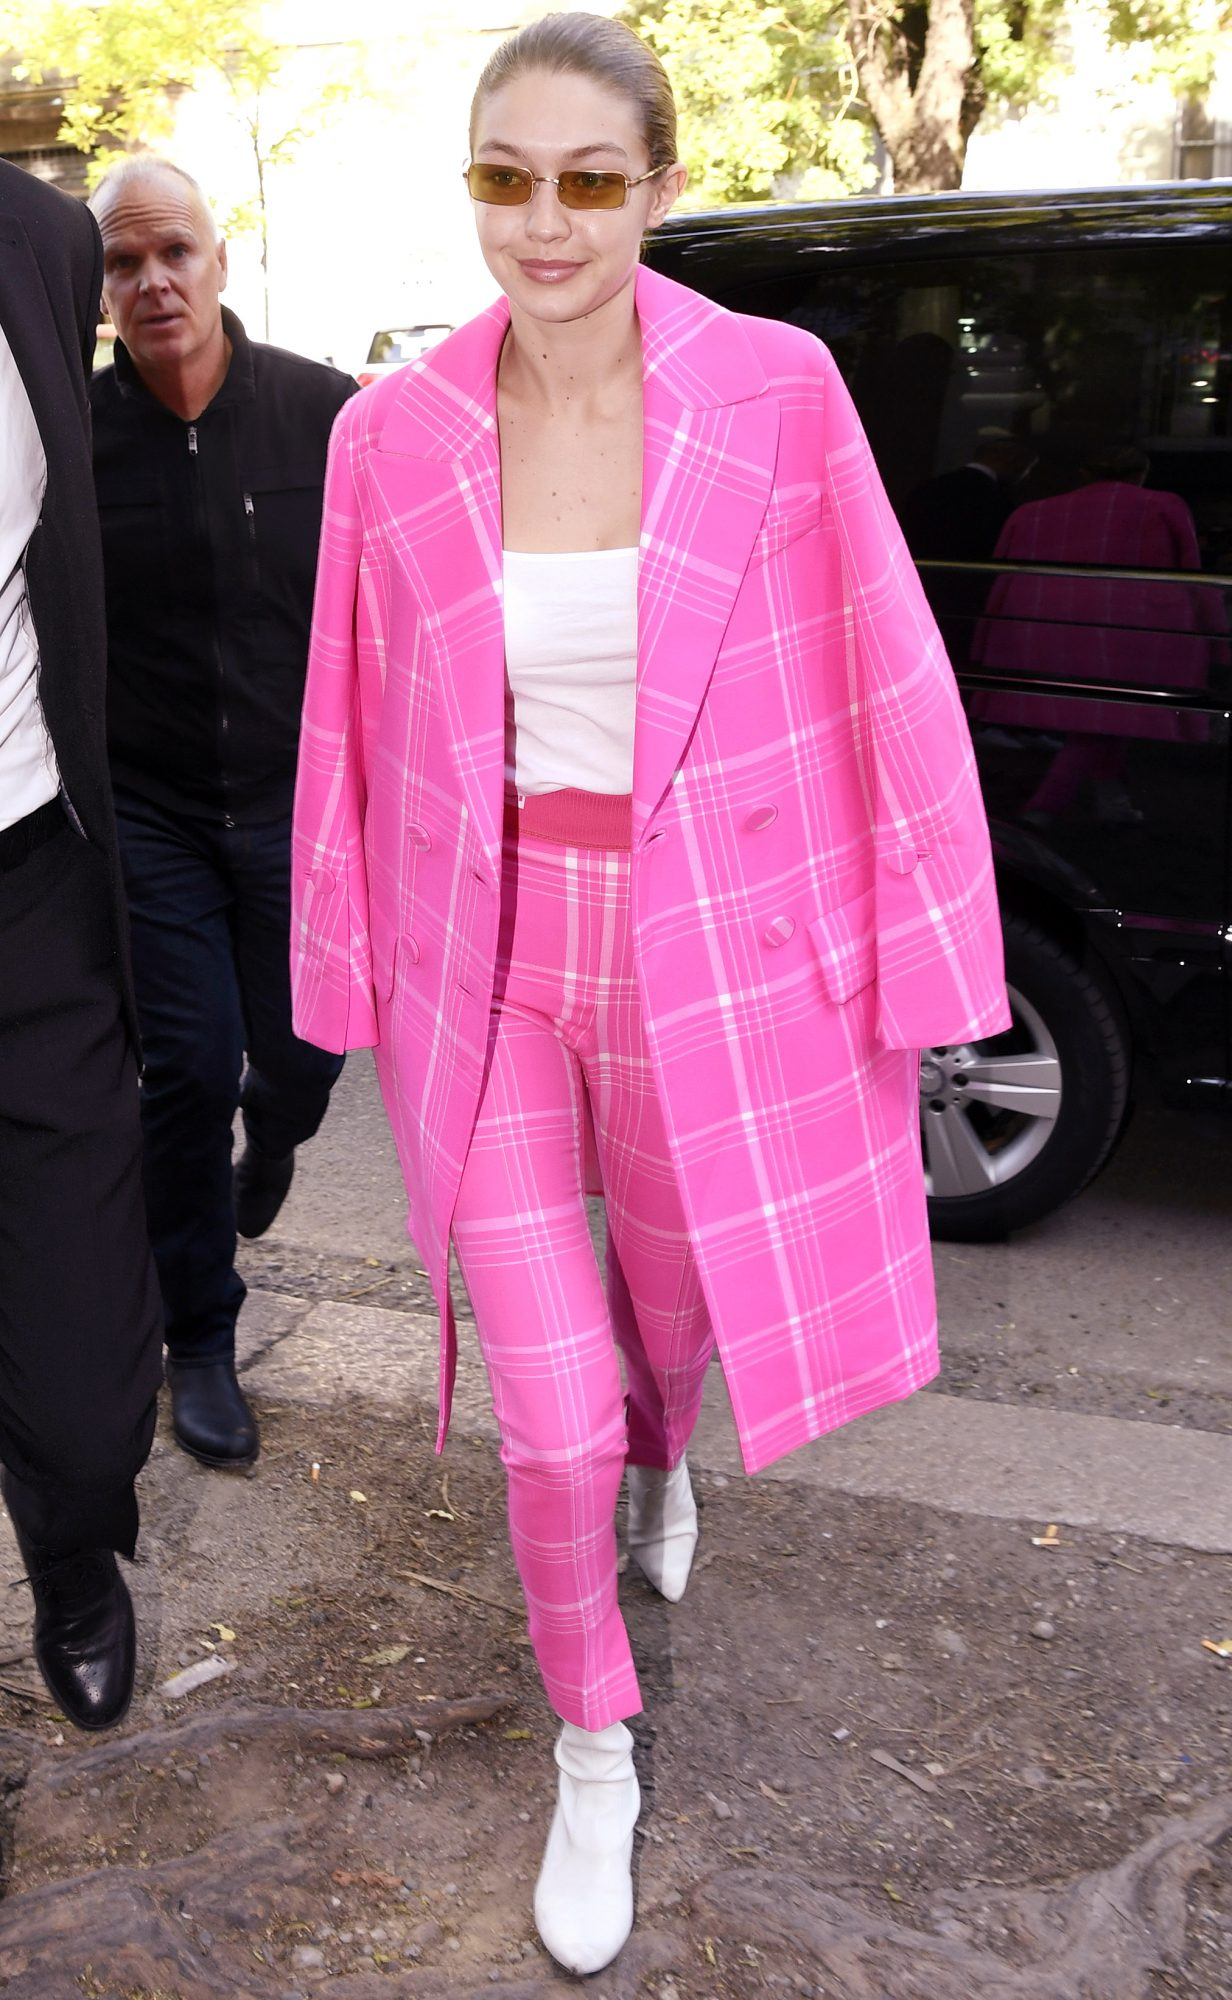 Gigi Hadid Hot Pink Outfit - Embed